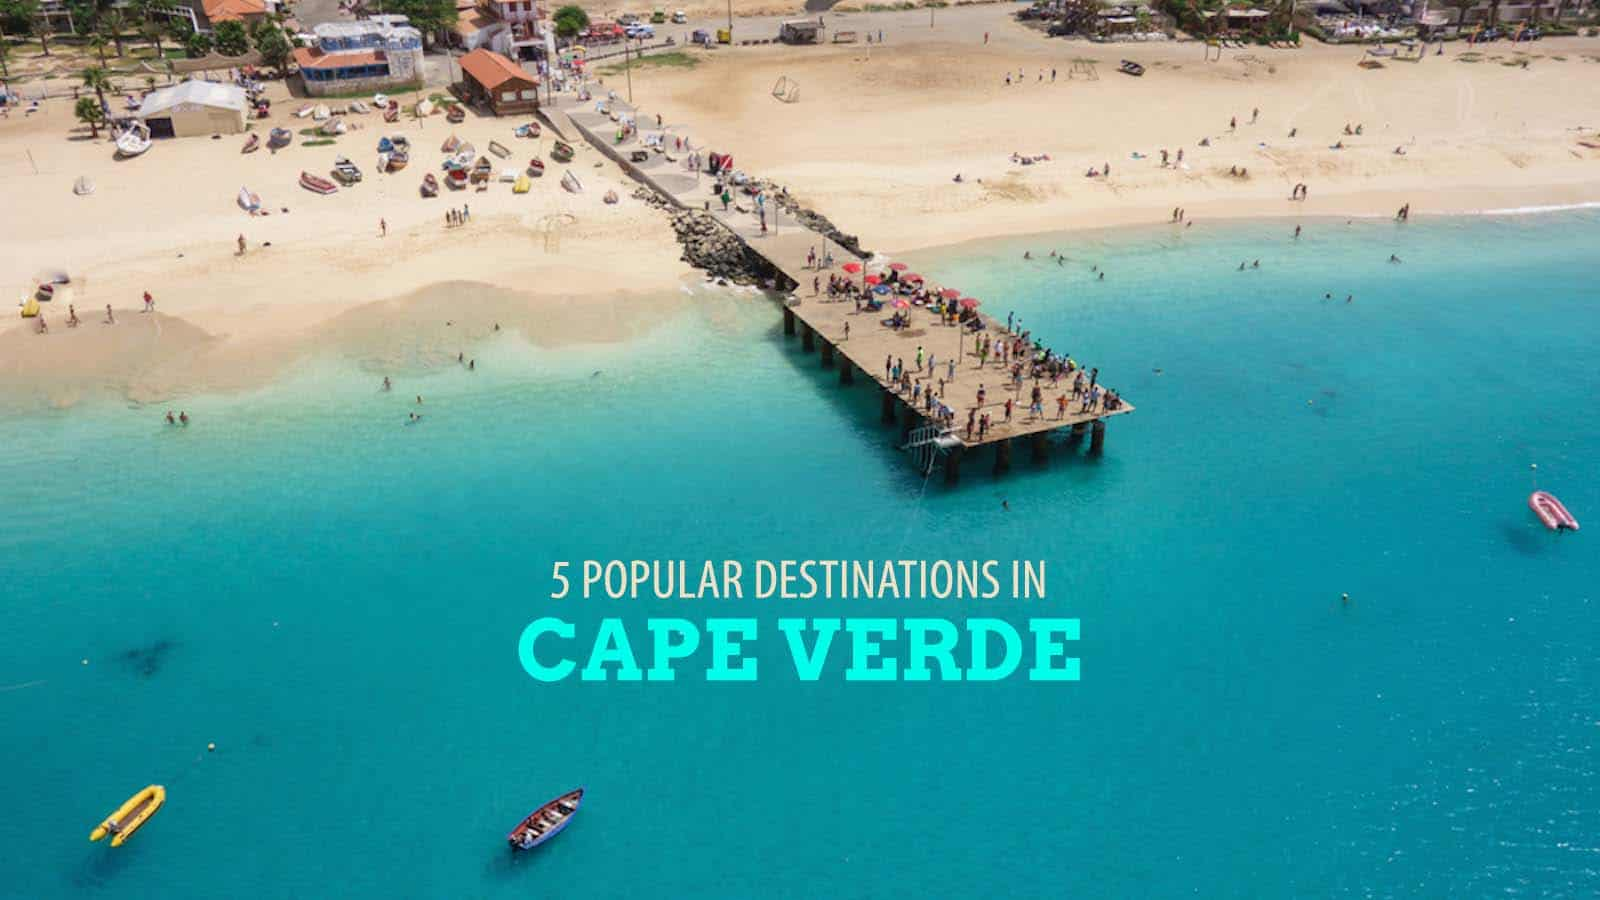 5 Popular Destinations in Cape Verde